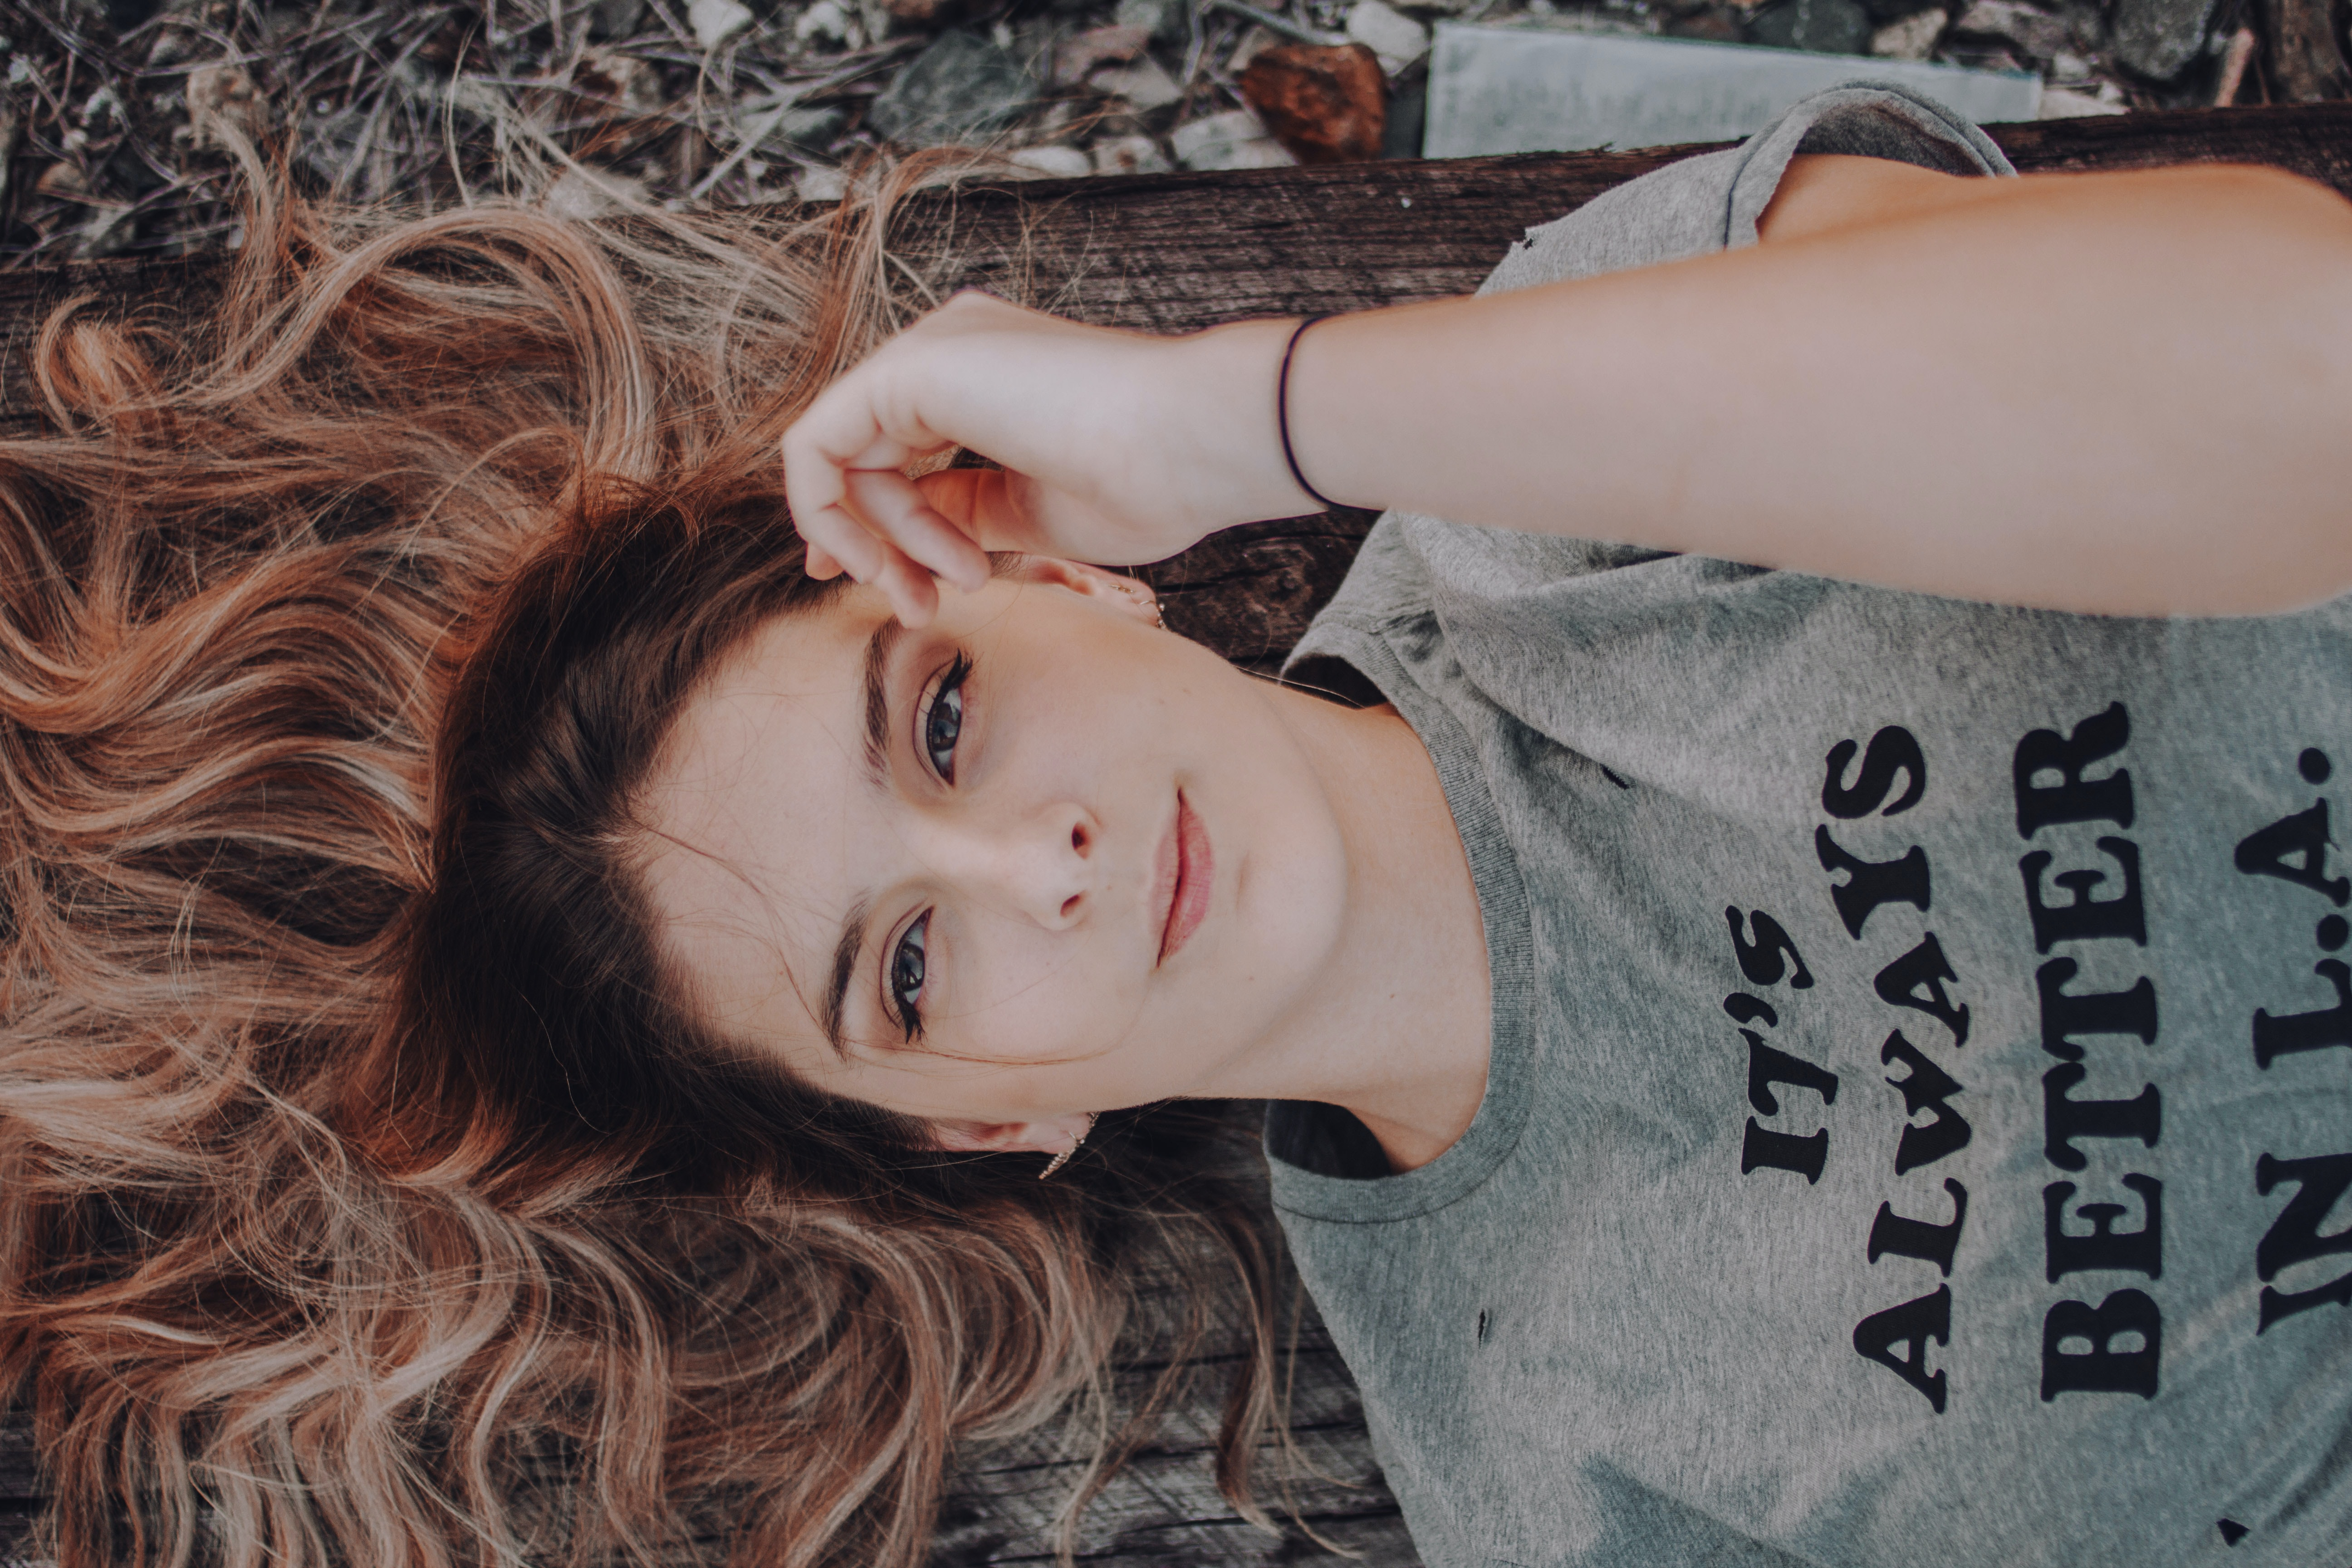 woman wearing gray t-shirt lying on ground